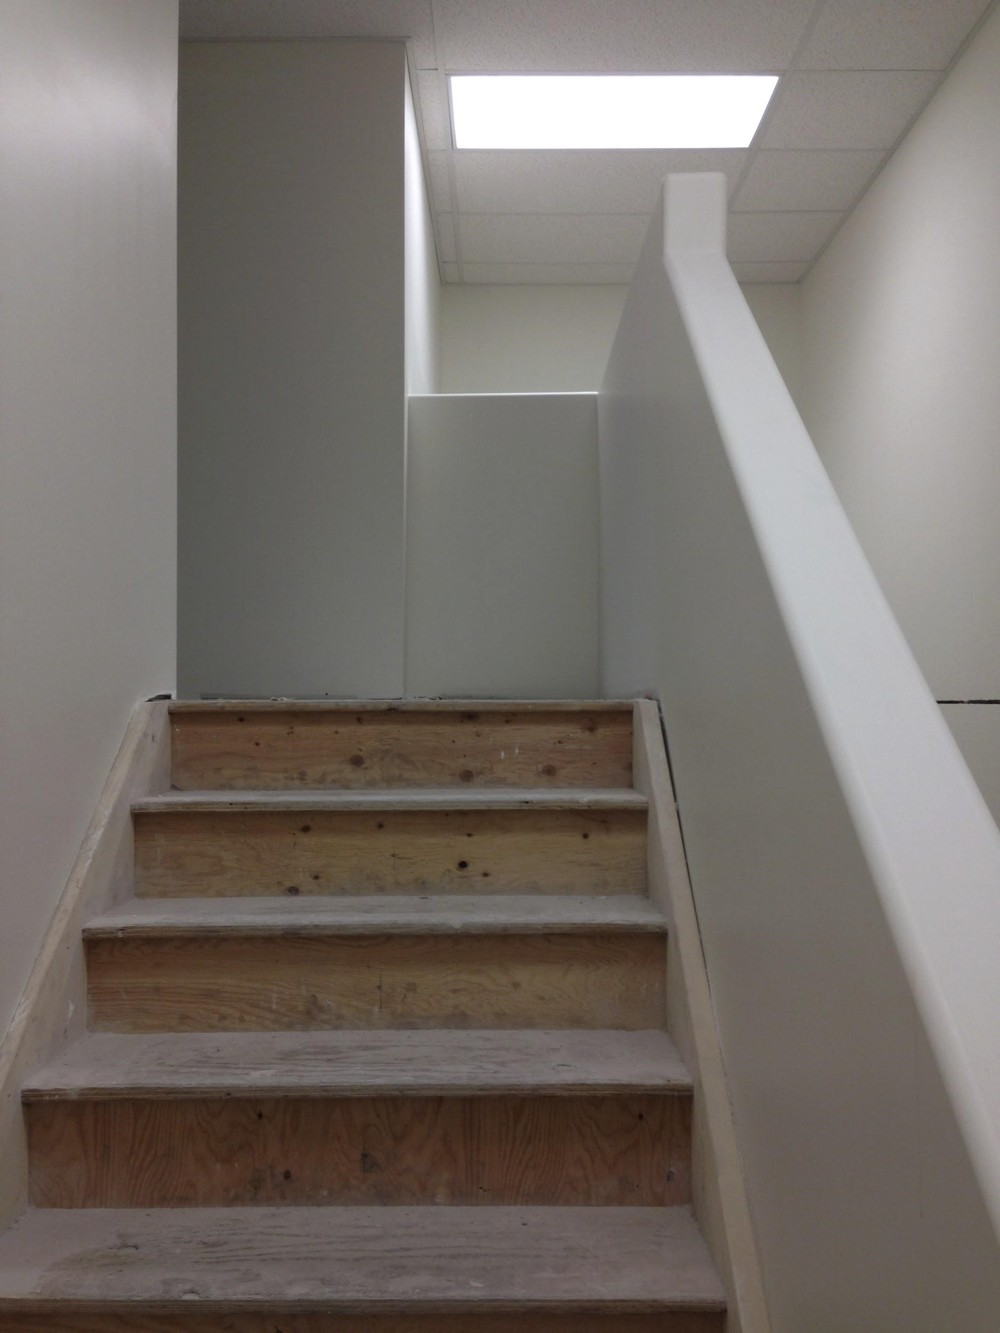 Edmonton Office Renovation, Renovation Contractors, Office Construction